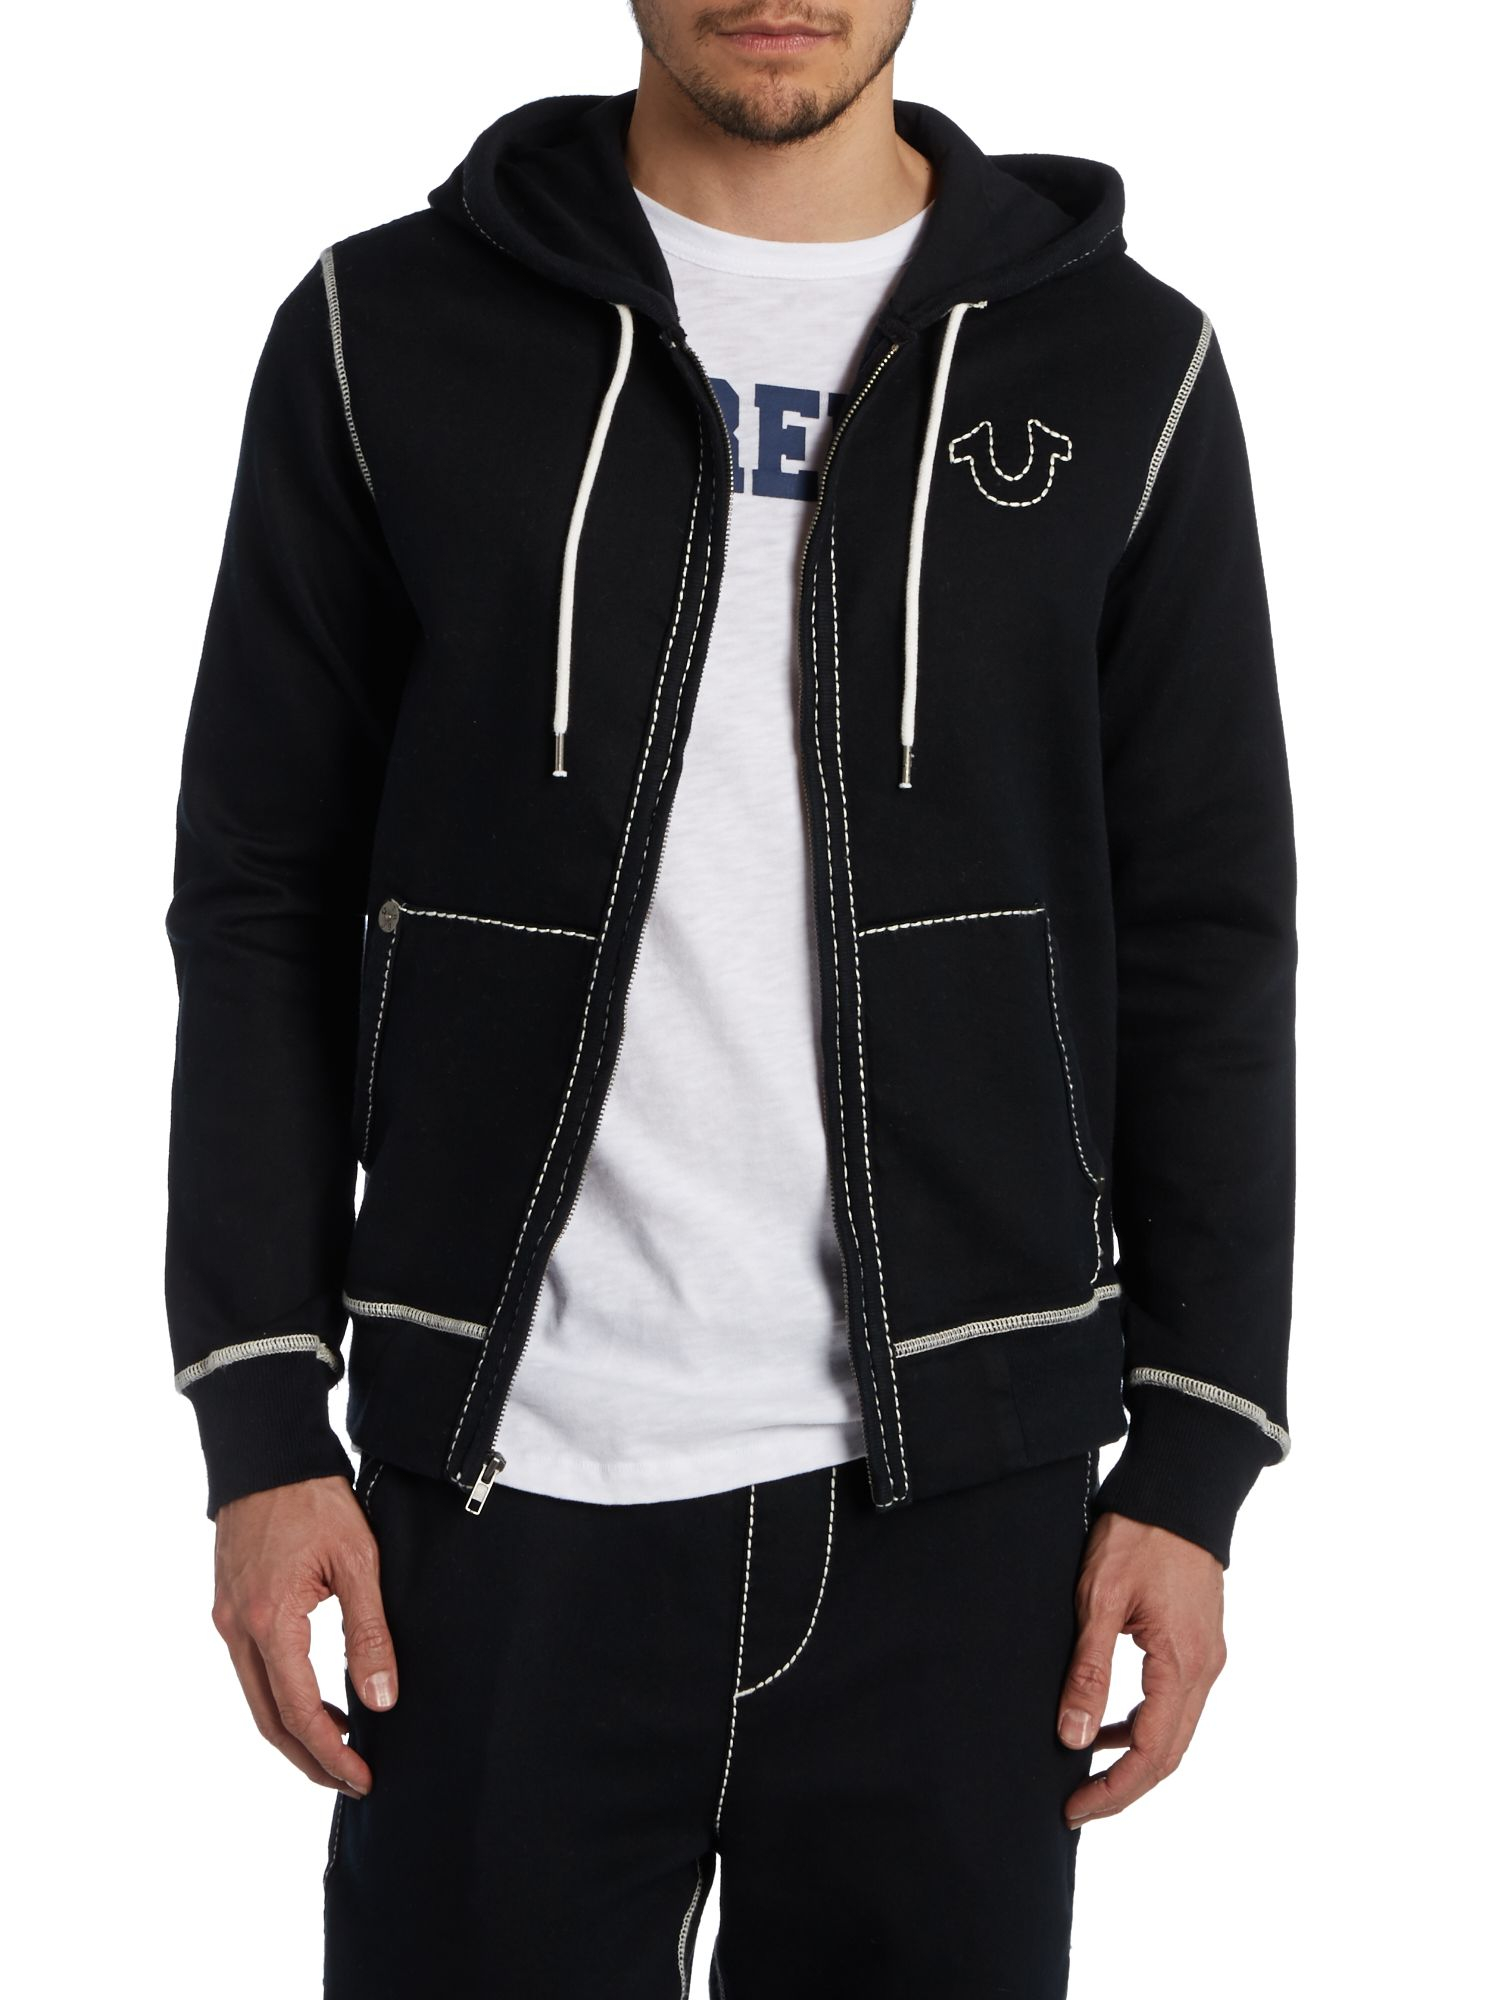 true religion contrast stitch full zip logo hoodie in black for men lyst. Black Bedroom Furniture Sets. Home Design Ideas